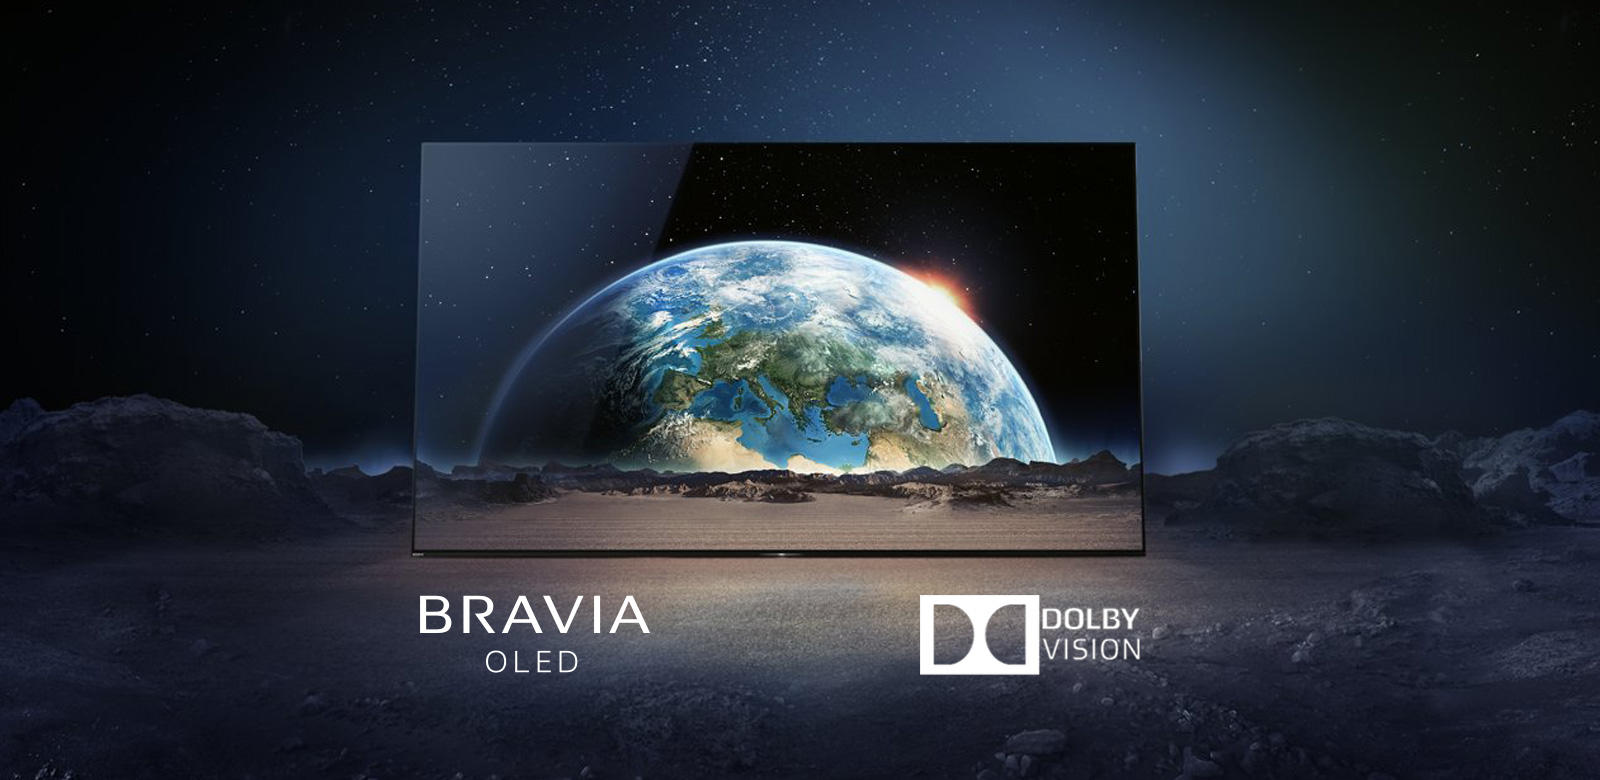 Sony Announce Dolby Vision Update for 2018 Bravia TVs